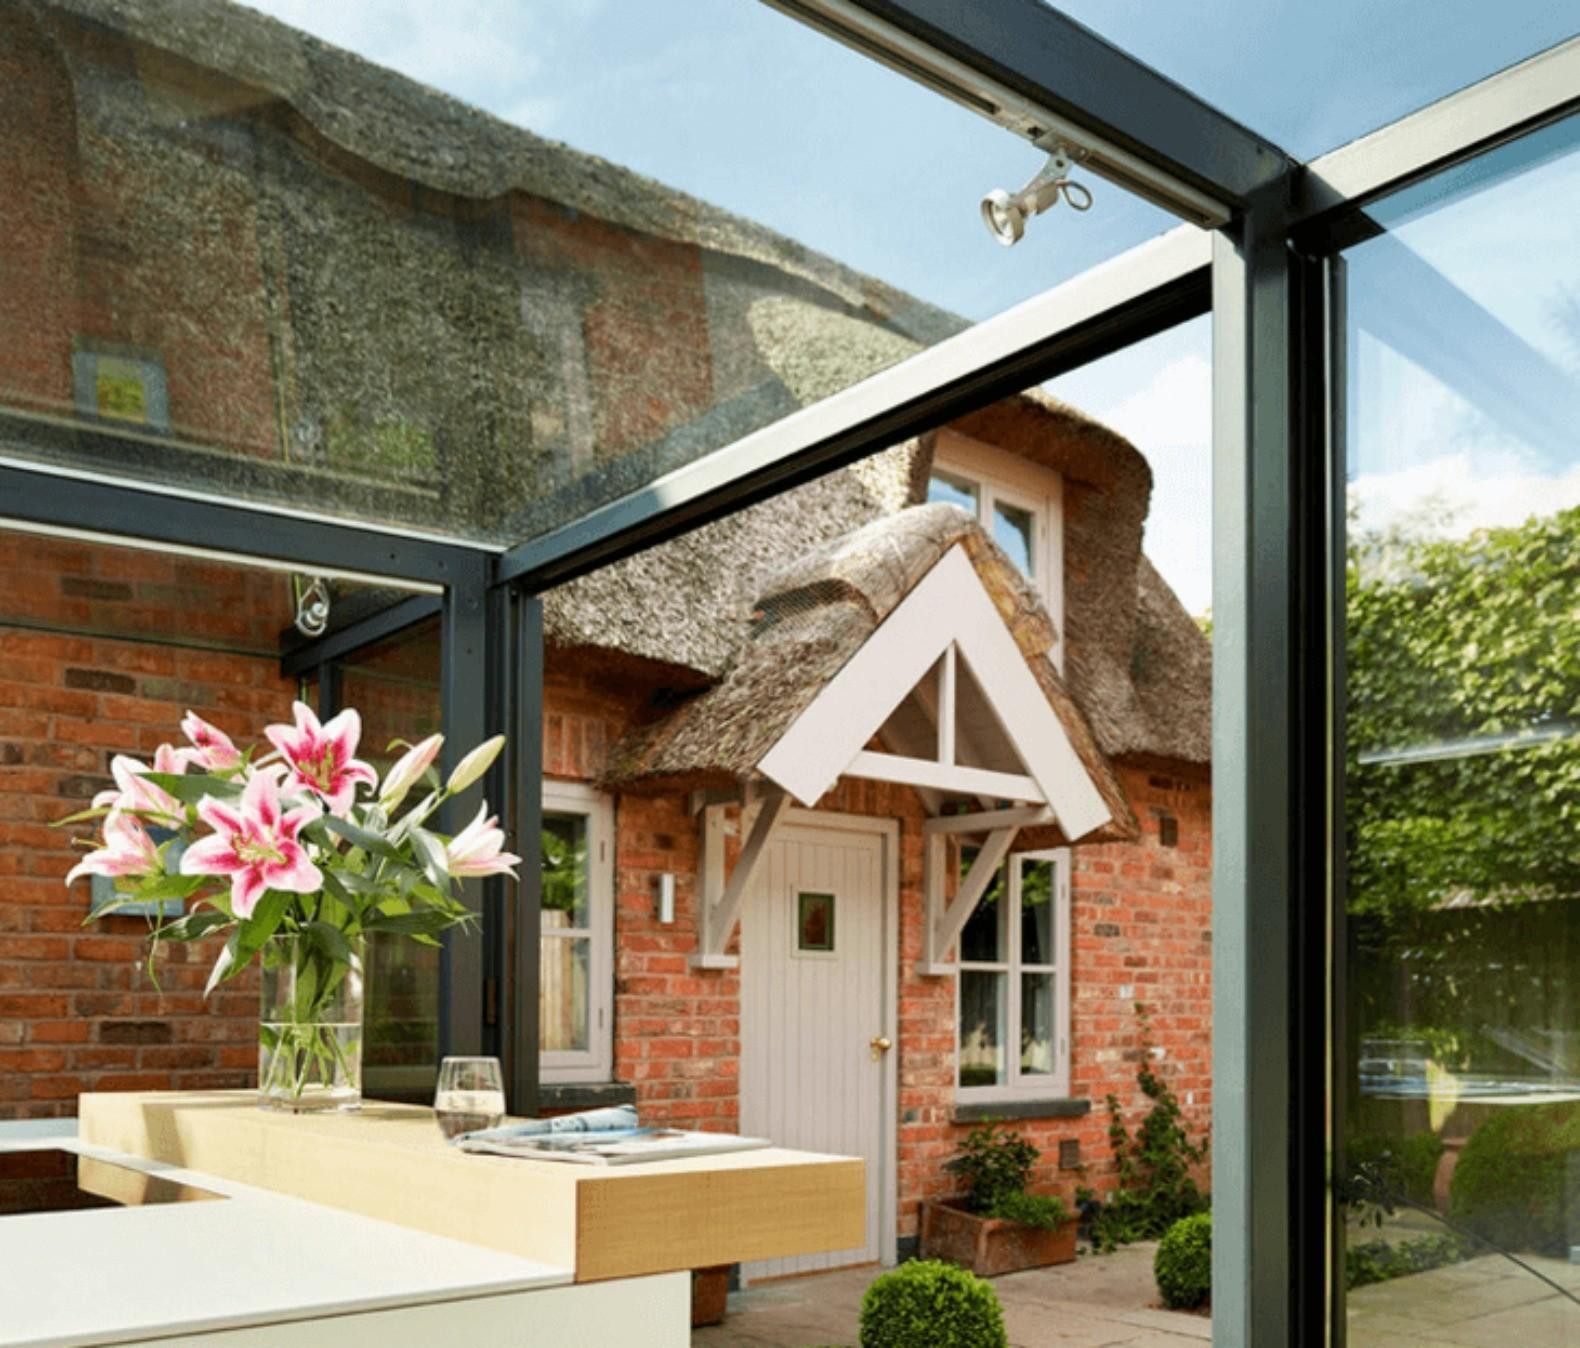 18th Century Thatched Roof English Cottage Renovated